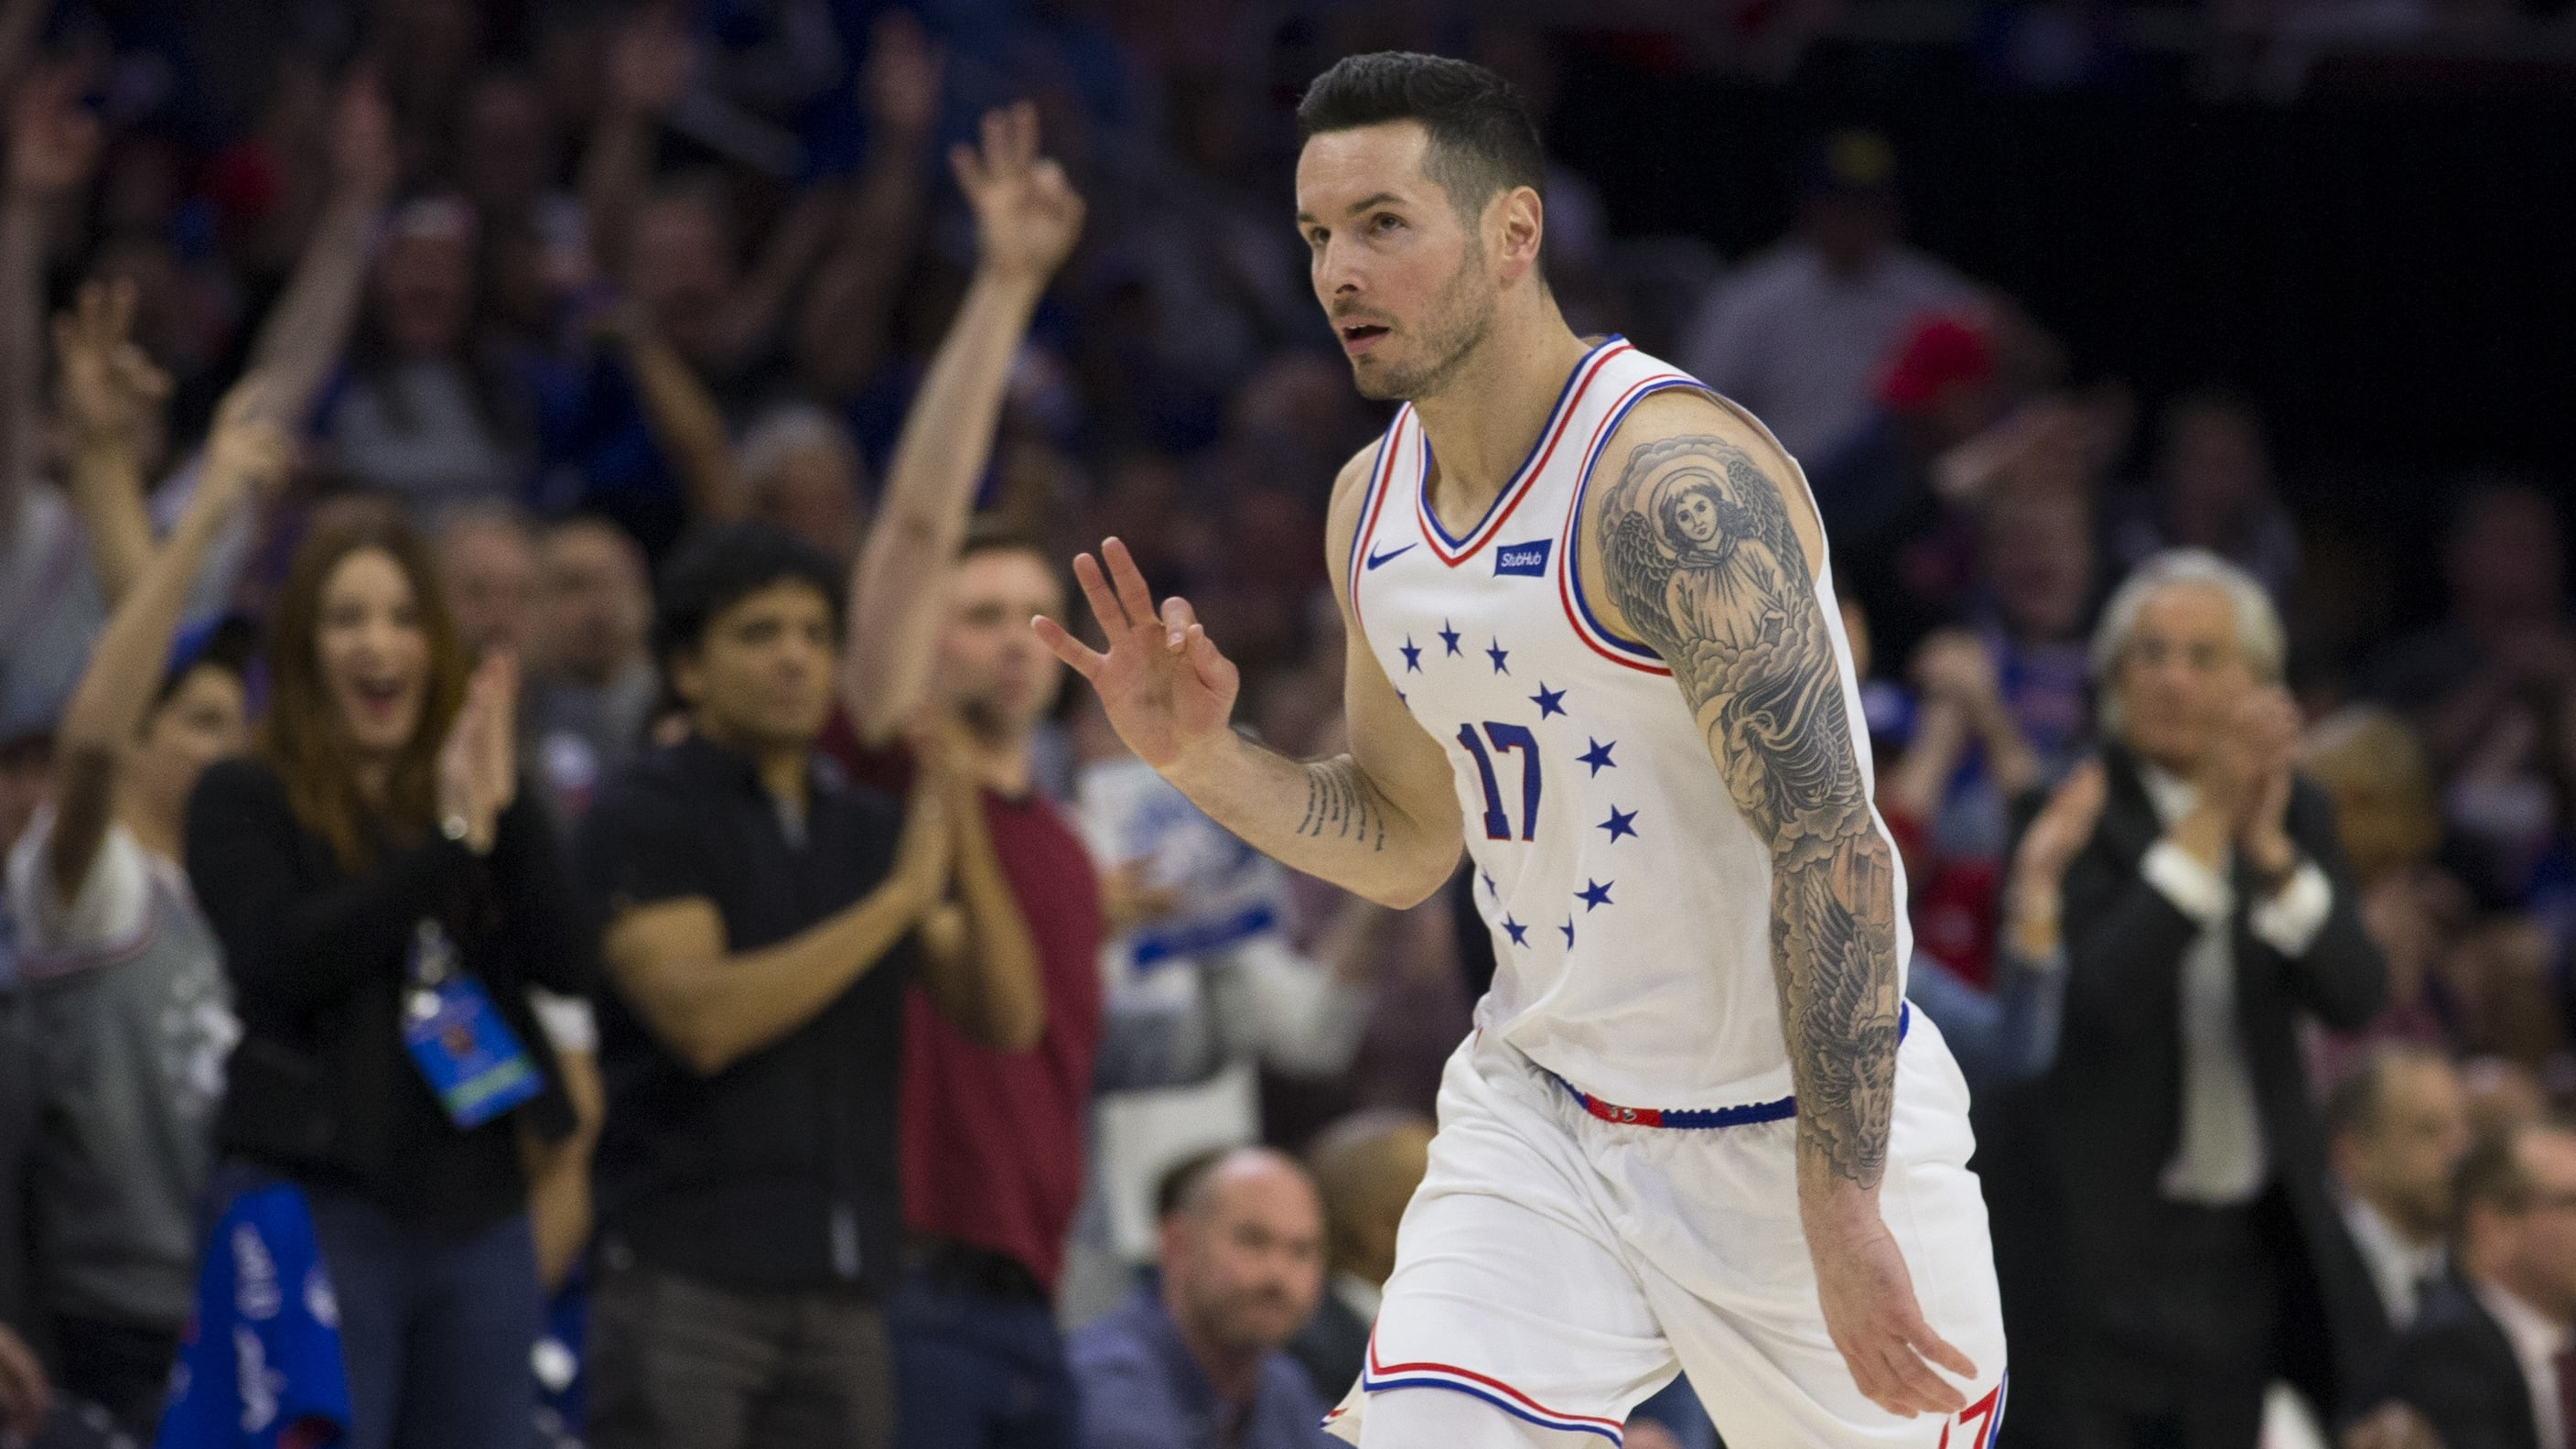 PHILADELPHIA, PA - MAY 09: JJ Redick #17 of the Philadelphia 76ers reacts after making a three point basket against the Toronto Raptors in the second quarter of Game Six of the Eastern Conference Semifinals at the Wells Fargo Center on May 9, 2019 in Philadelphia, Pennsylvania. NOTE TO USER: User expressly acknowledges and agrees that, by downloading and or using this photograph, User is consenting to the terms and conditions of the Getty Images License Agreement. (Photo by Mitchell Leff/Getty Images)